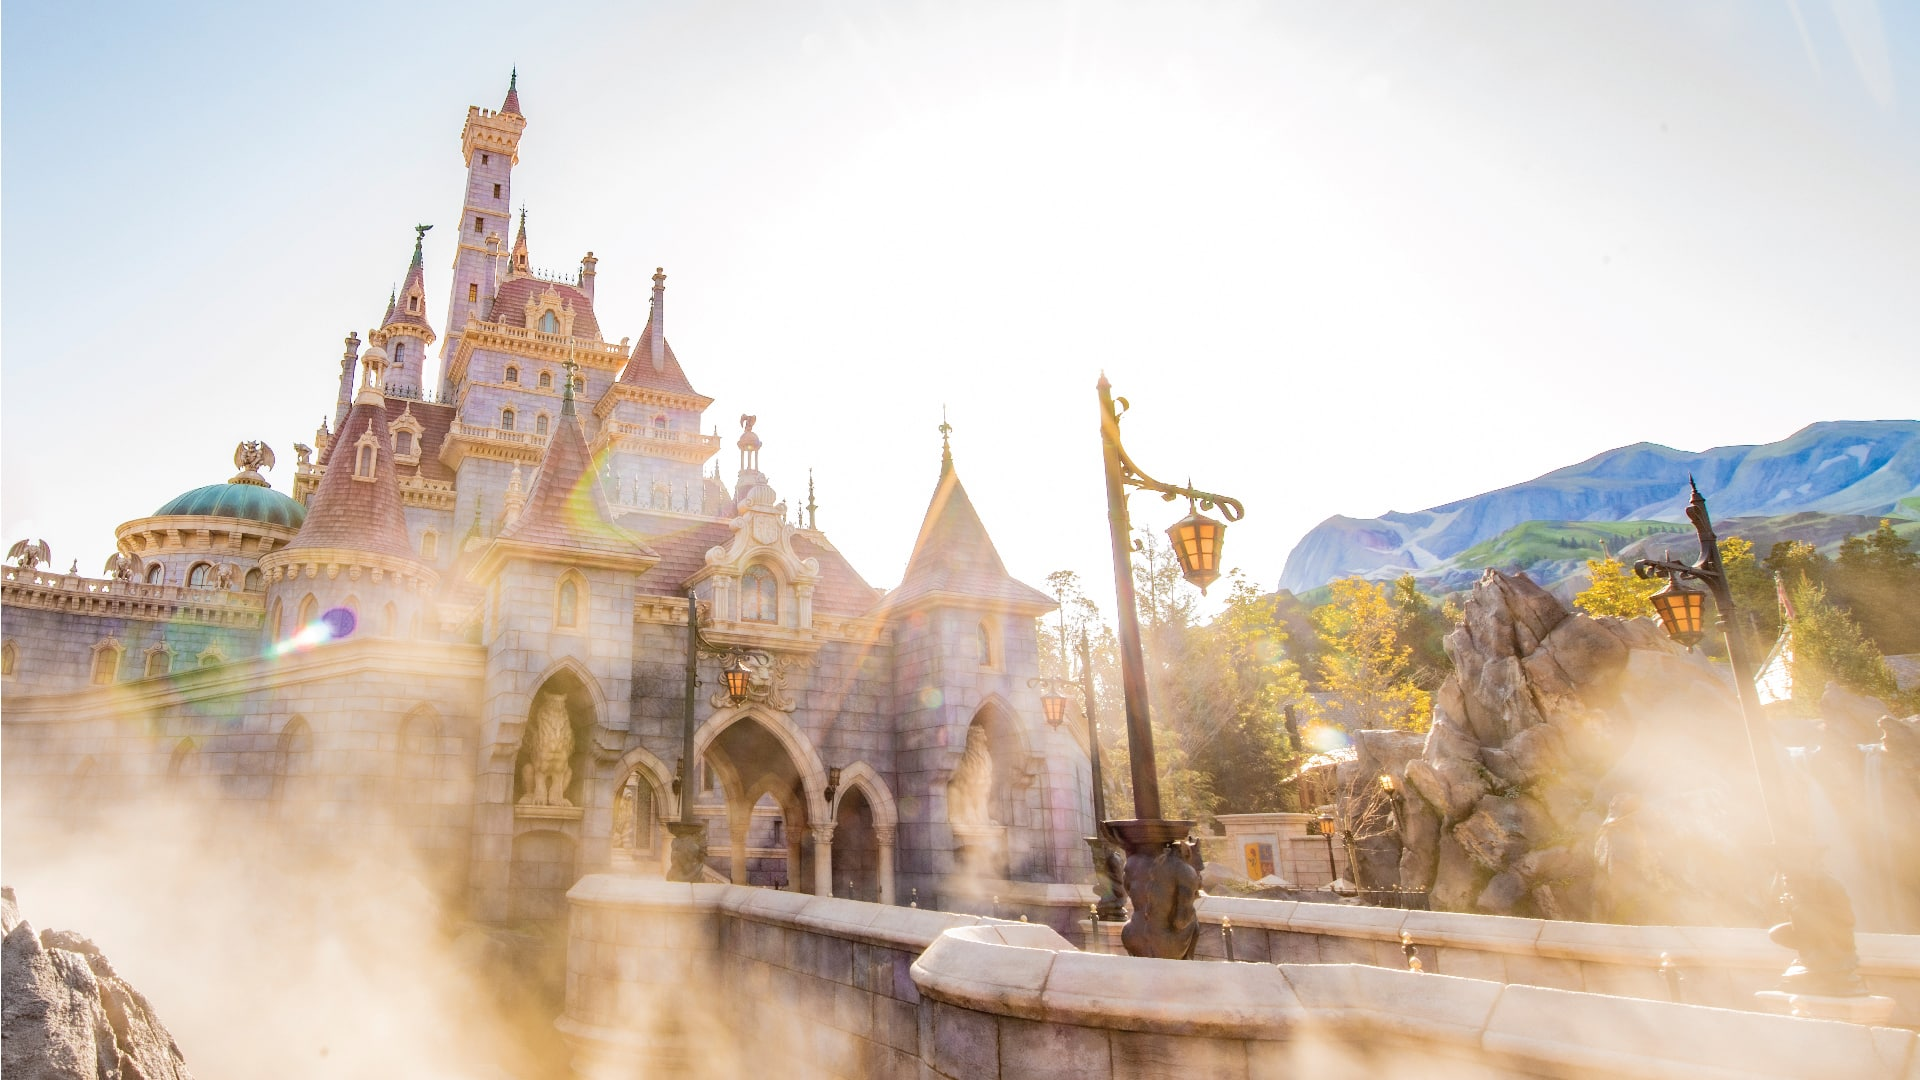 New Experiences At Tokyo Disneyland Park Featuring New Fantasyland Enchanted Tale Of Beauty And The Beast And More Open Today Disney Parks Blog